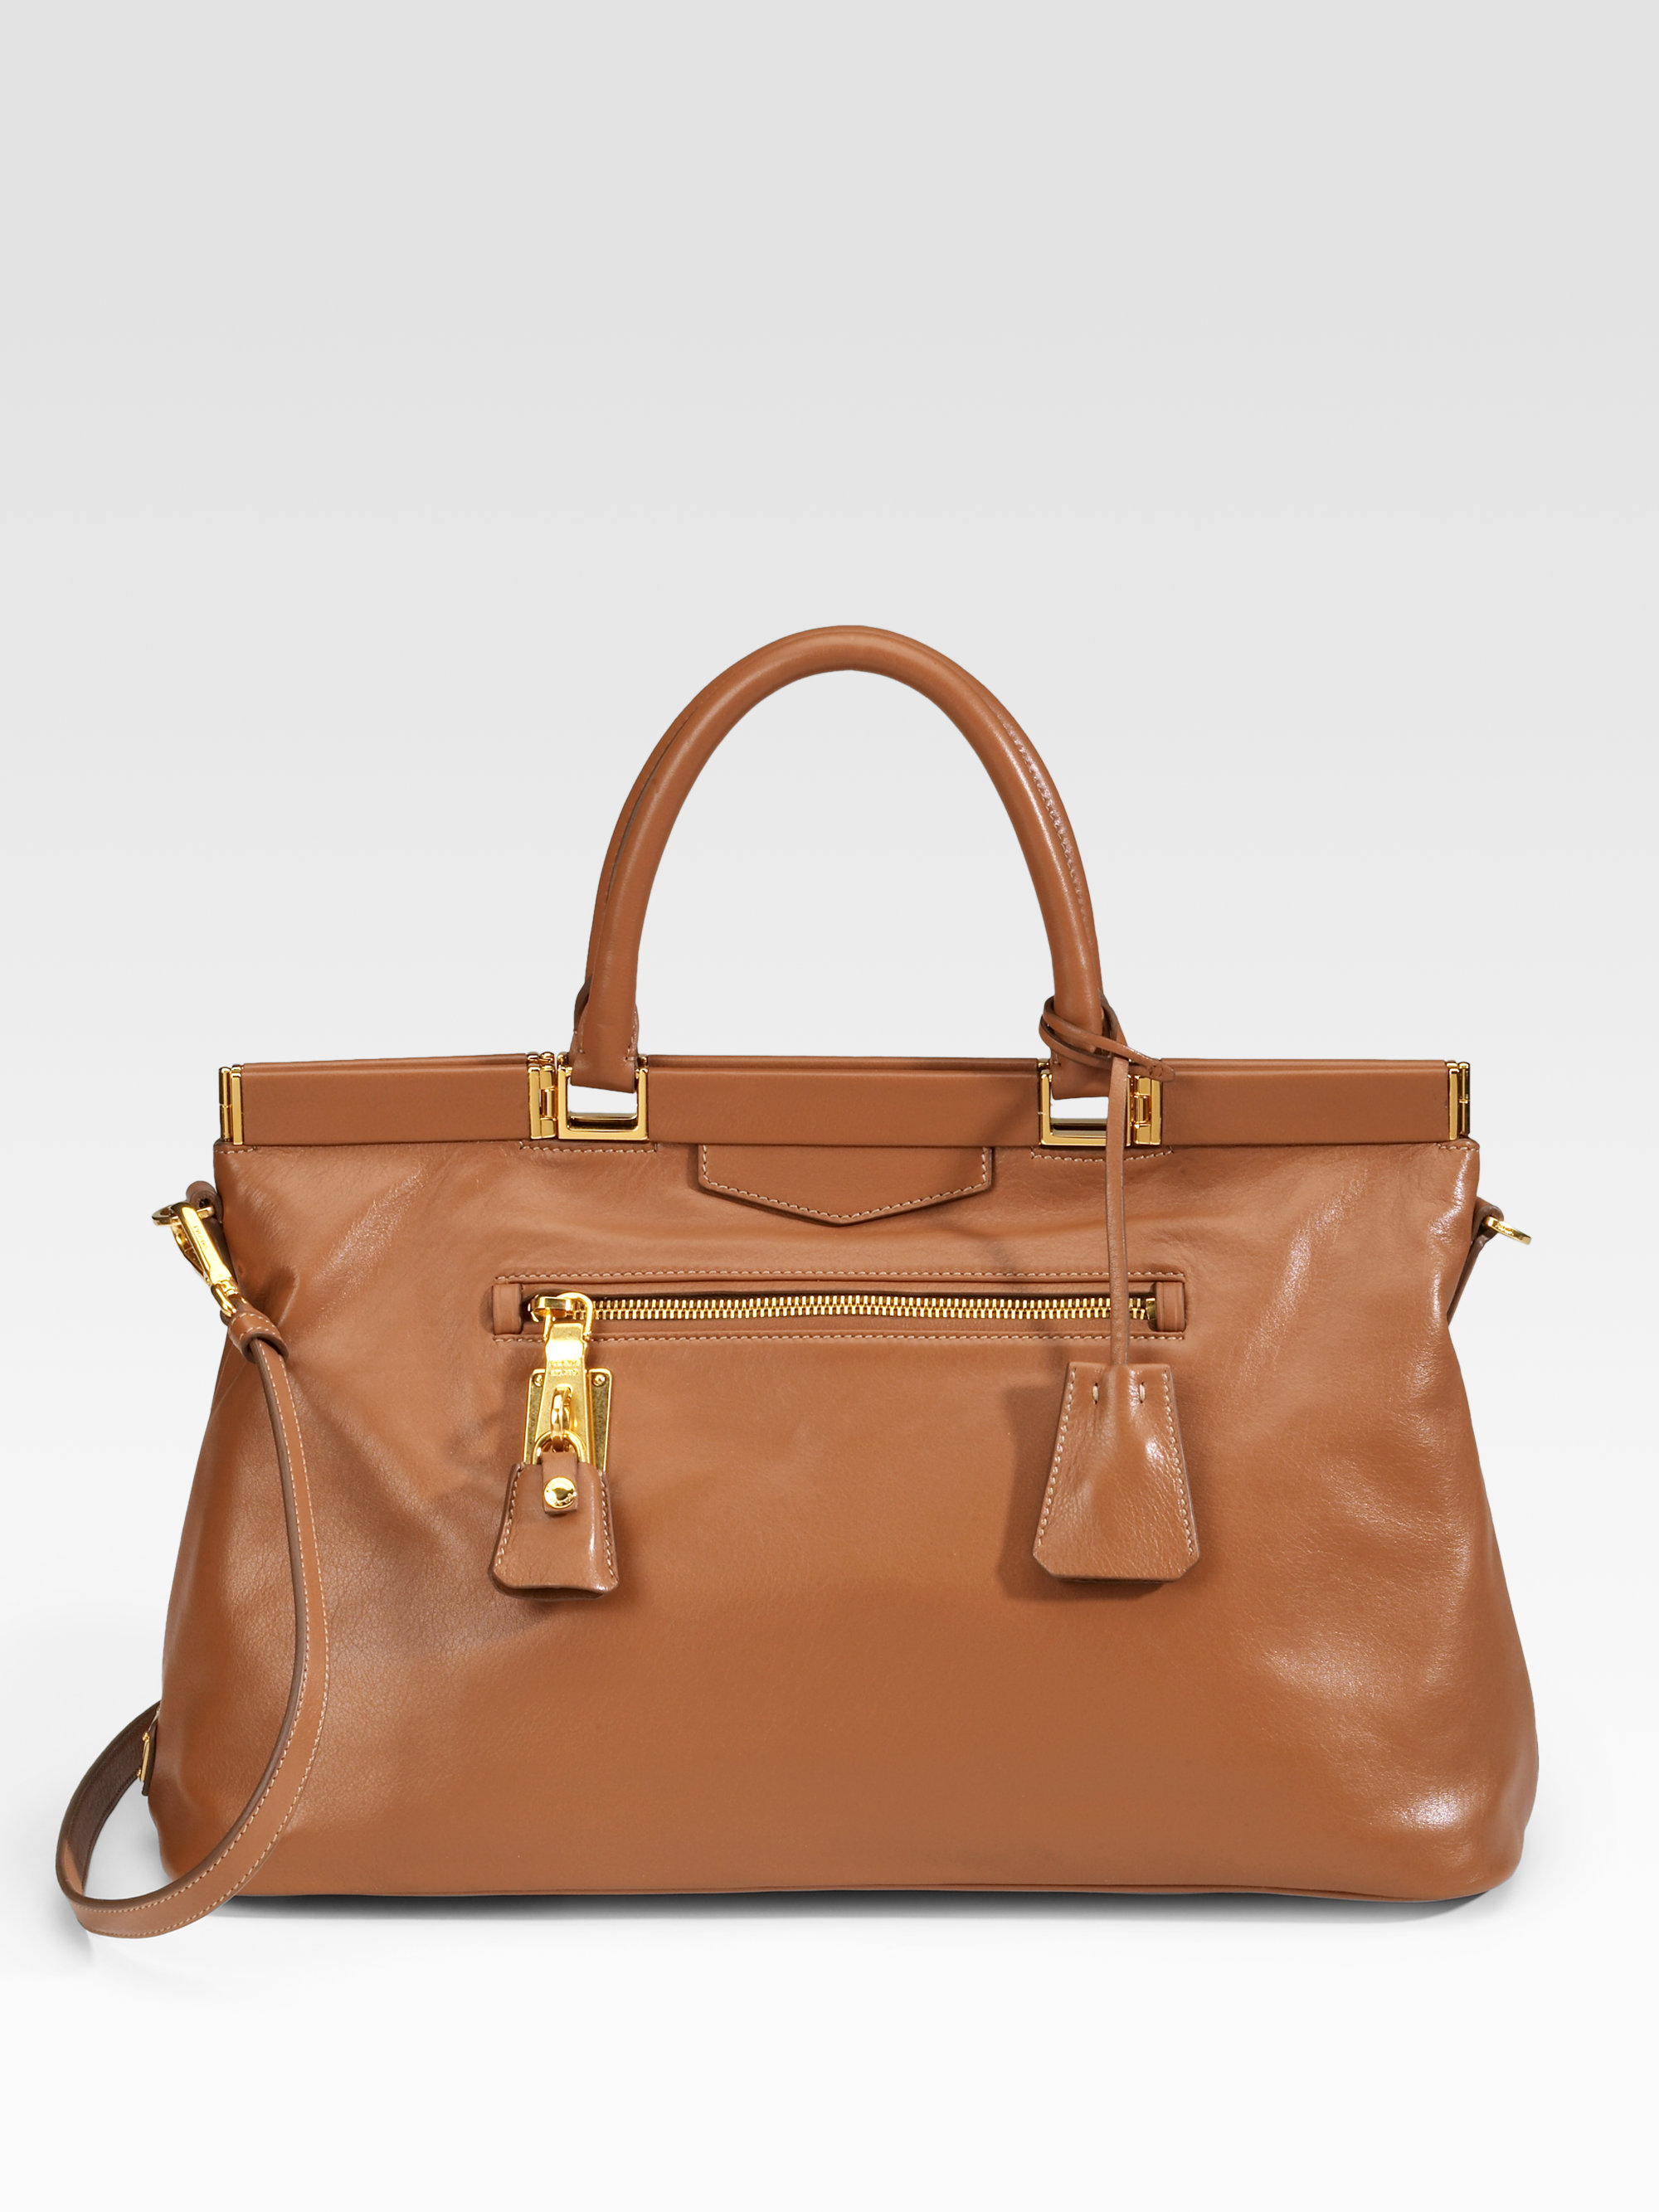 Prada Soft Calfskin Leather Satchel in Brown | Lyst